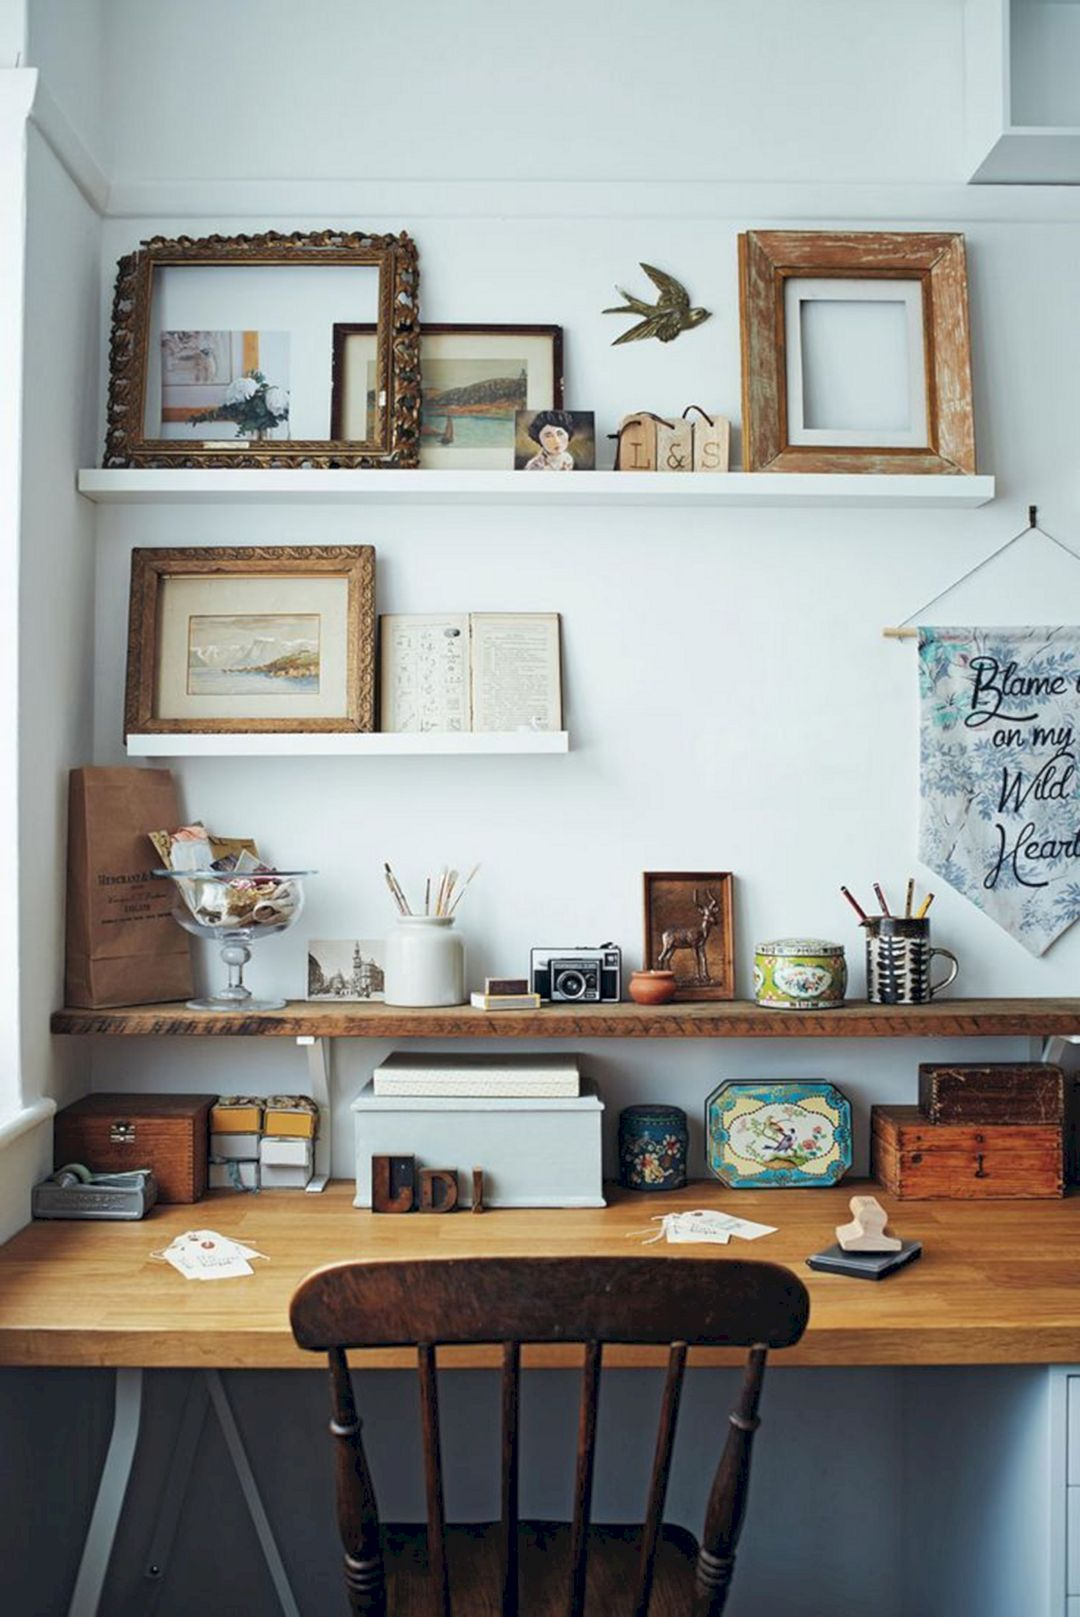 25+ Most Beautiful Home Office Design Ideas | Office designs ...